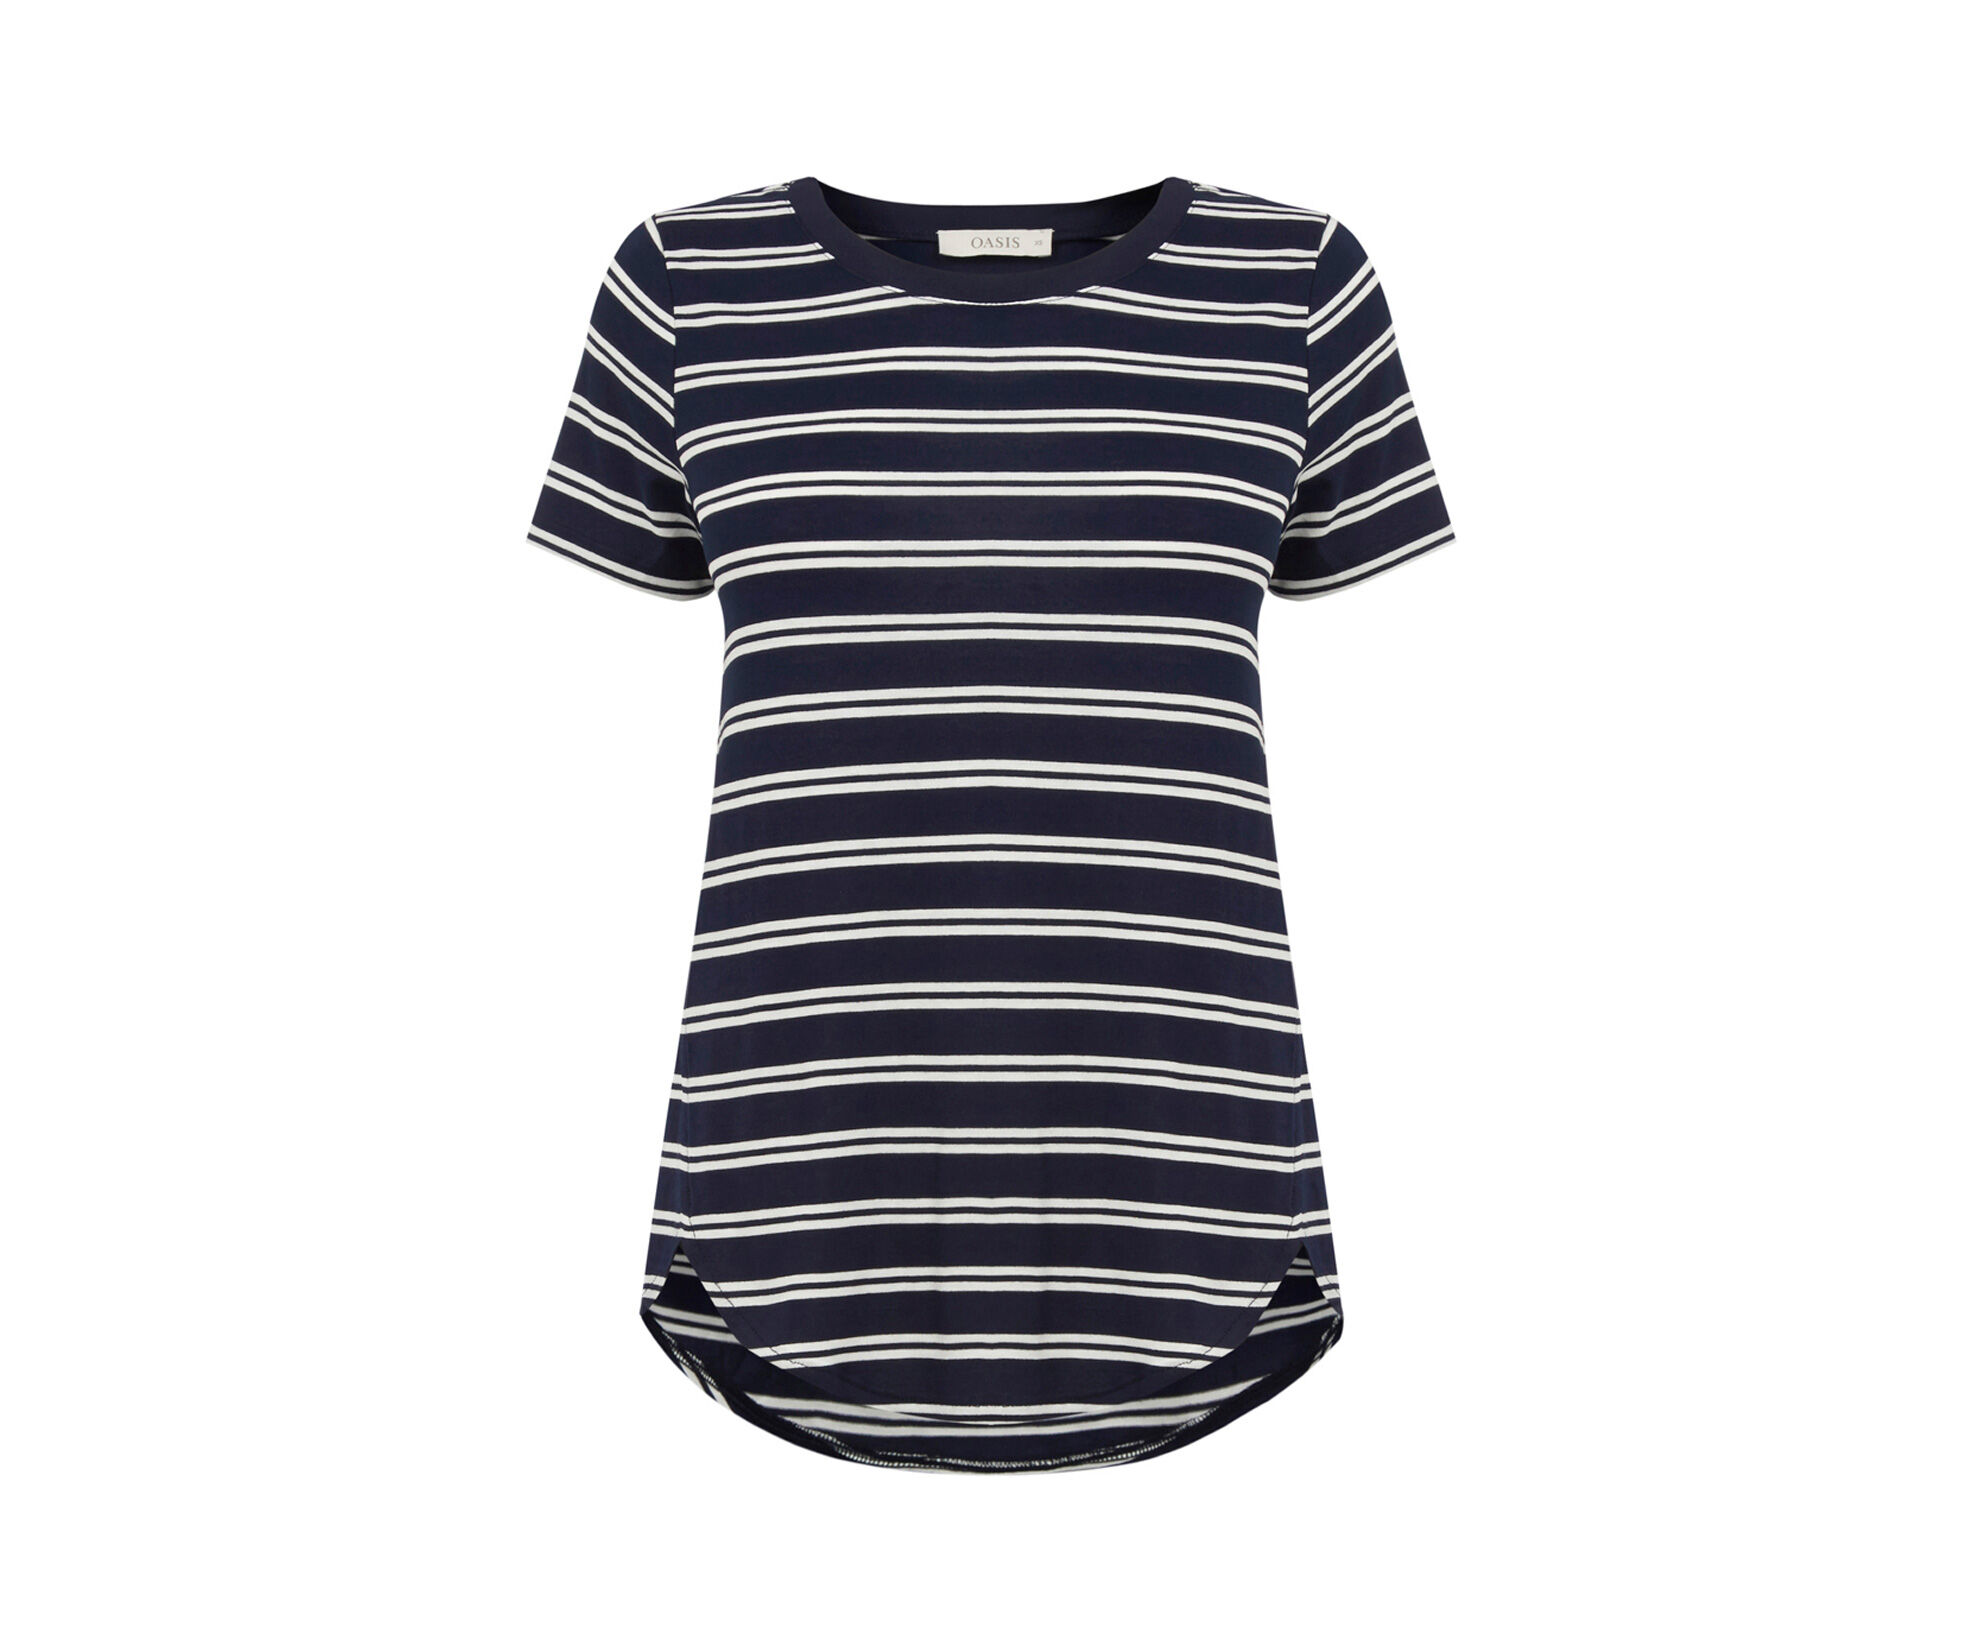 Artikel klicken und genauer betrachten! - Our classic tee gets a SS16 makeover thanks to a nautical stripe and a preppy navy shade. We'll be wearing ours on denim for an on-trend alternative to our trusty basic t-shirt. Our classic tee gets a SS16 makeover thanks to a nautical stripe and a preppy navy shade. We'll be wearing ours on denim for an on-trend alternative to our trusty basic t-shirt. | im Online Shop kaufen